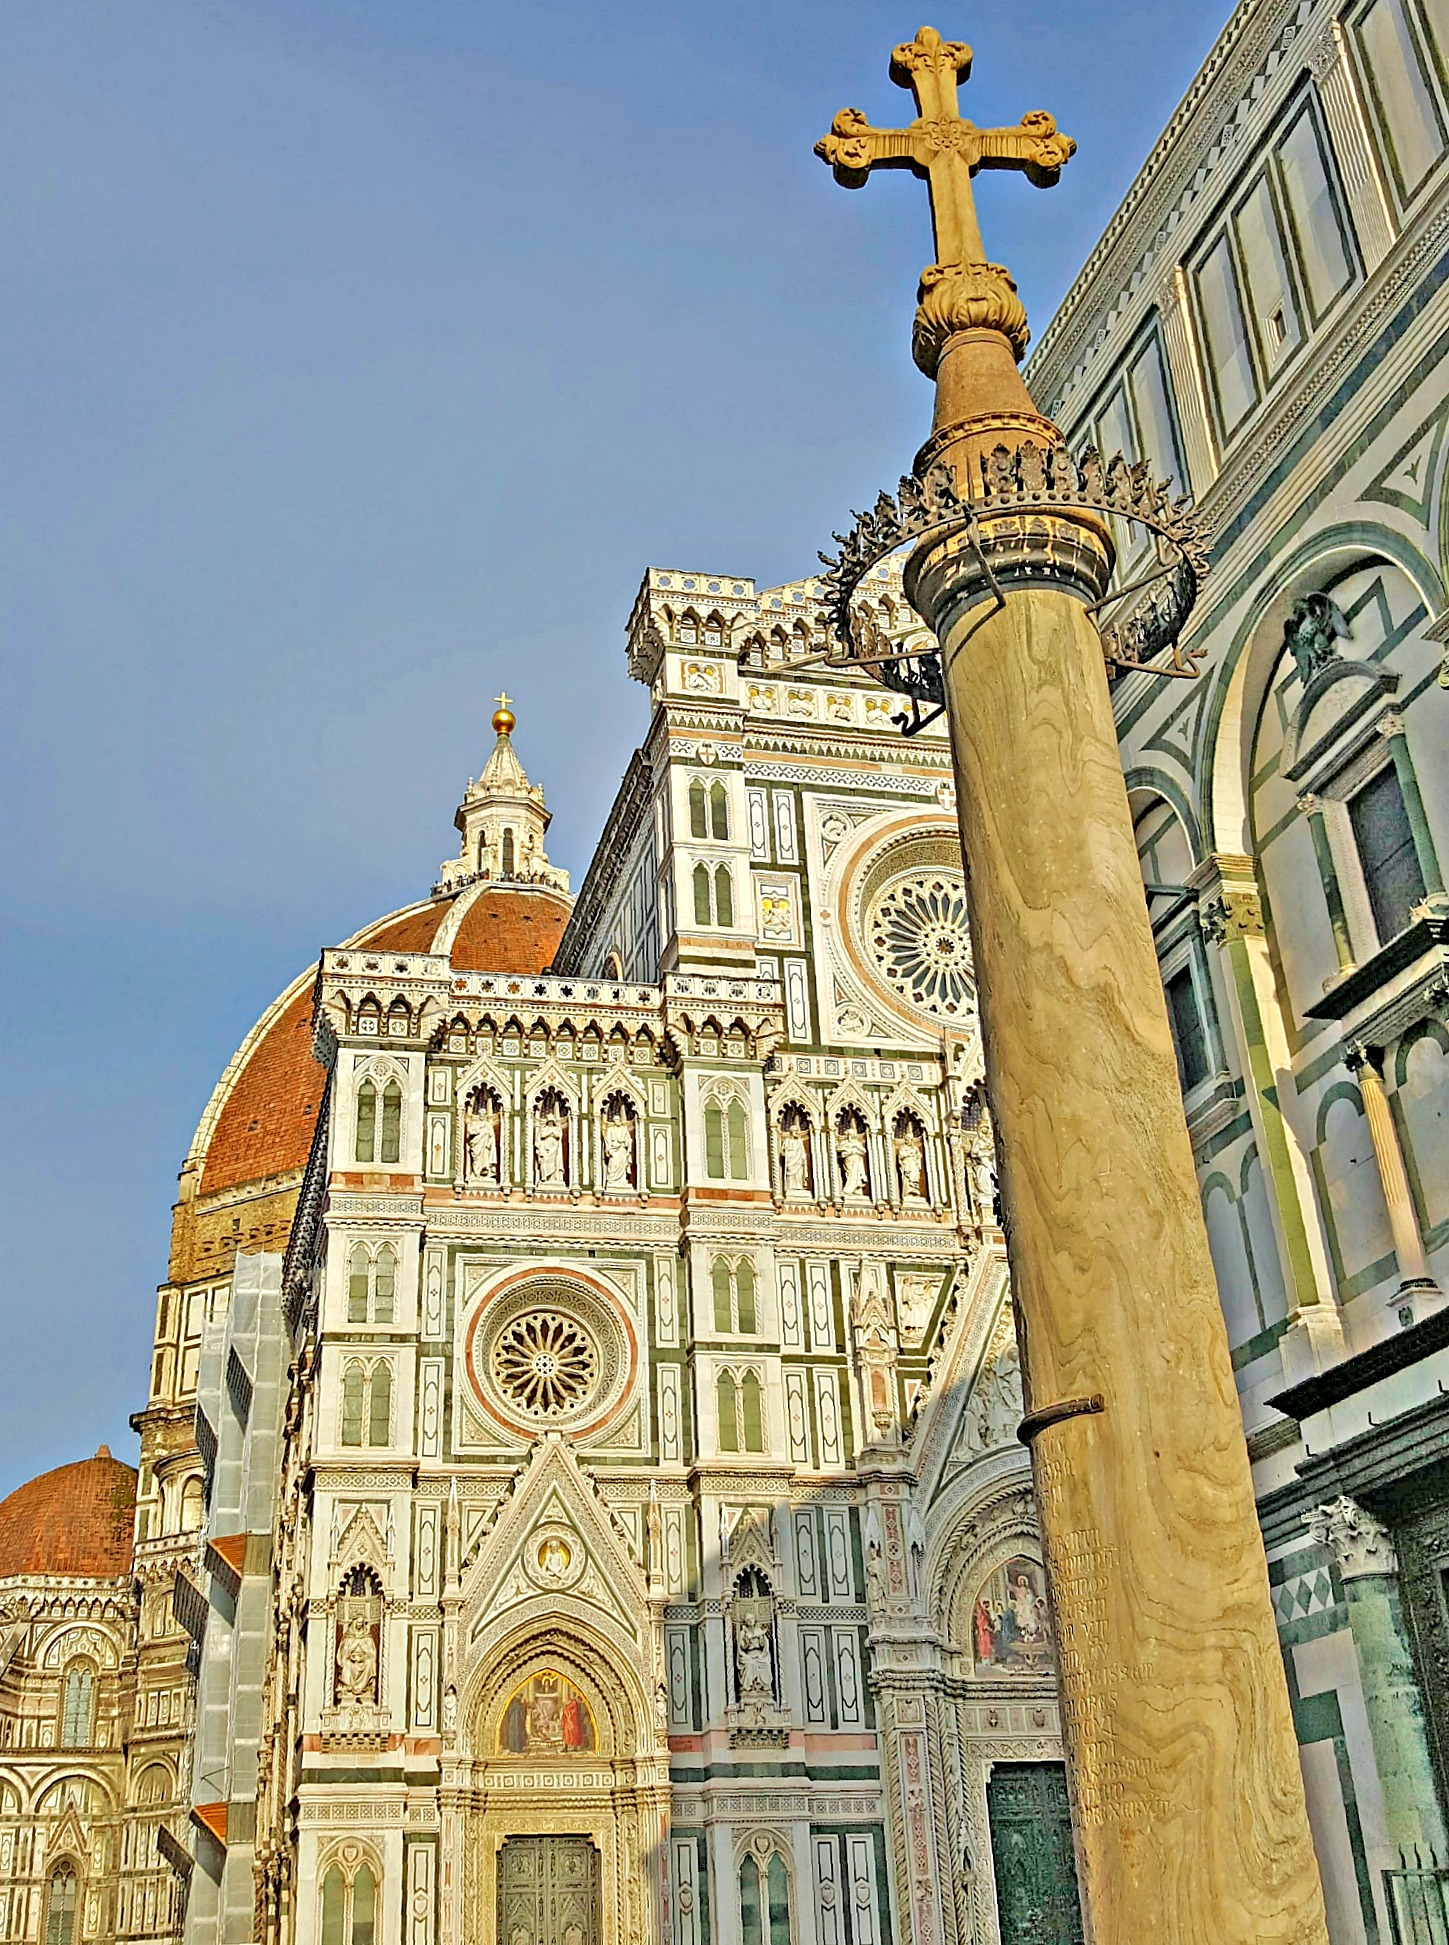 Famous sights in Italy - Piazza Duomo Florence.